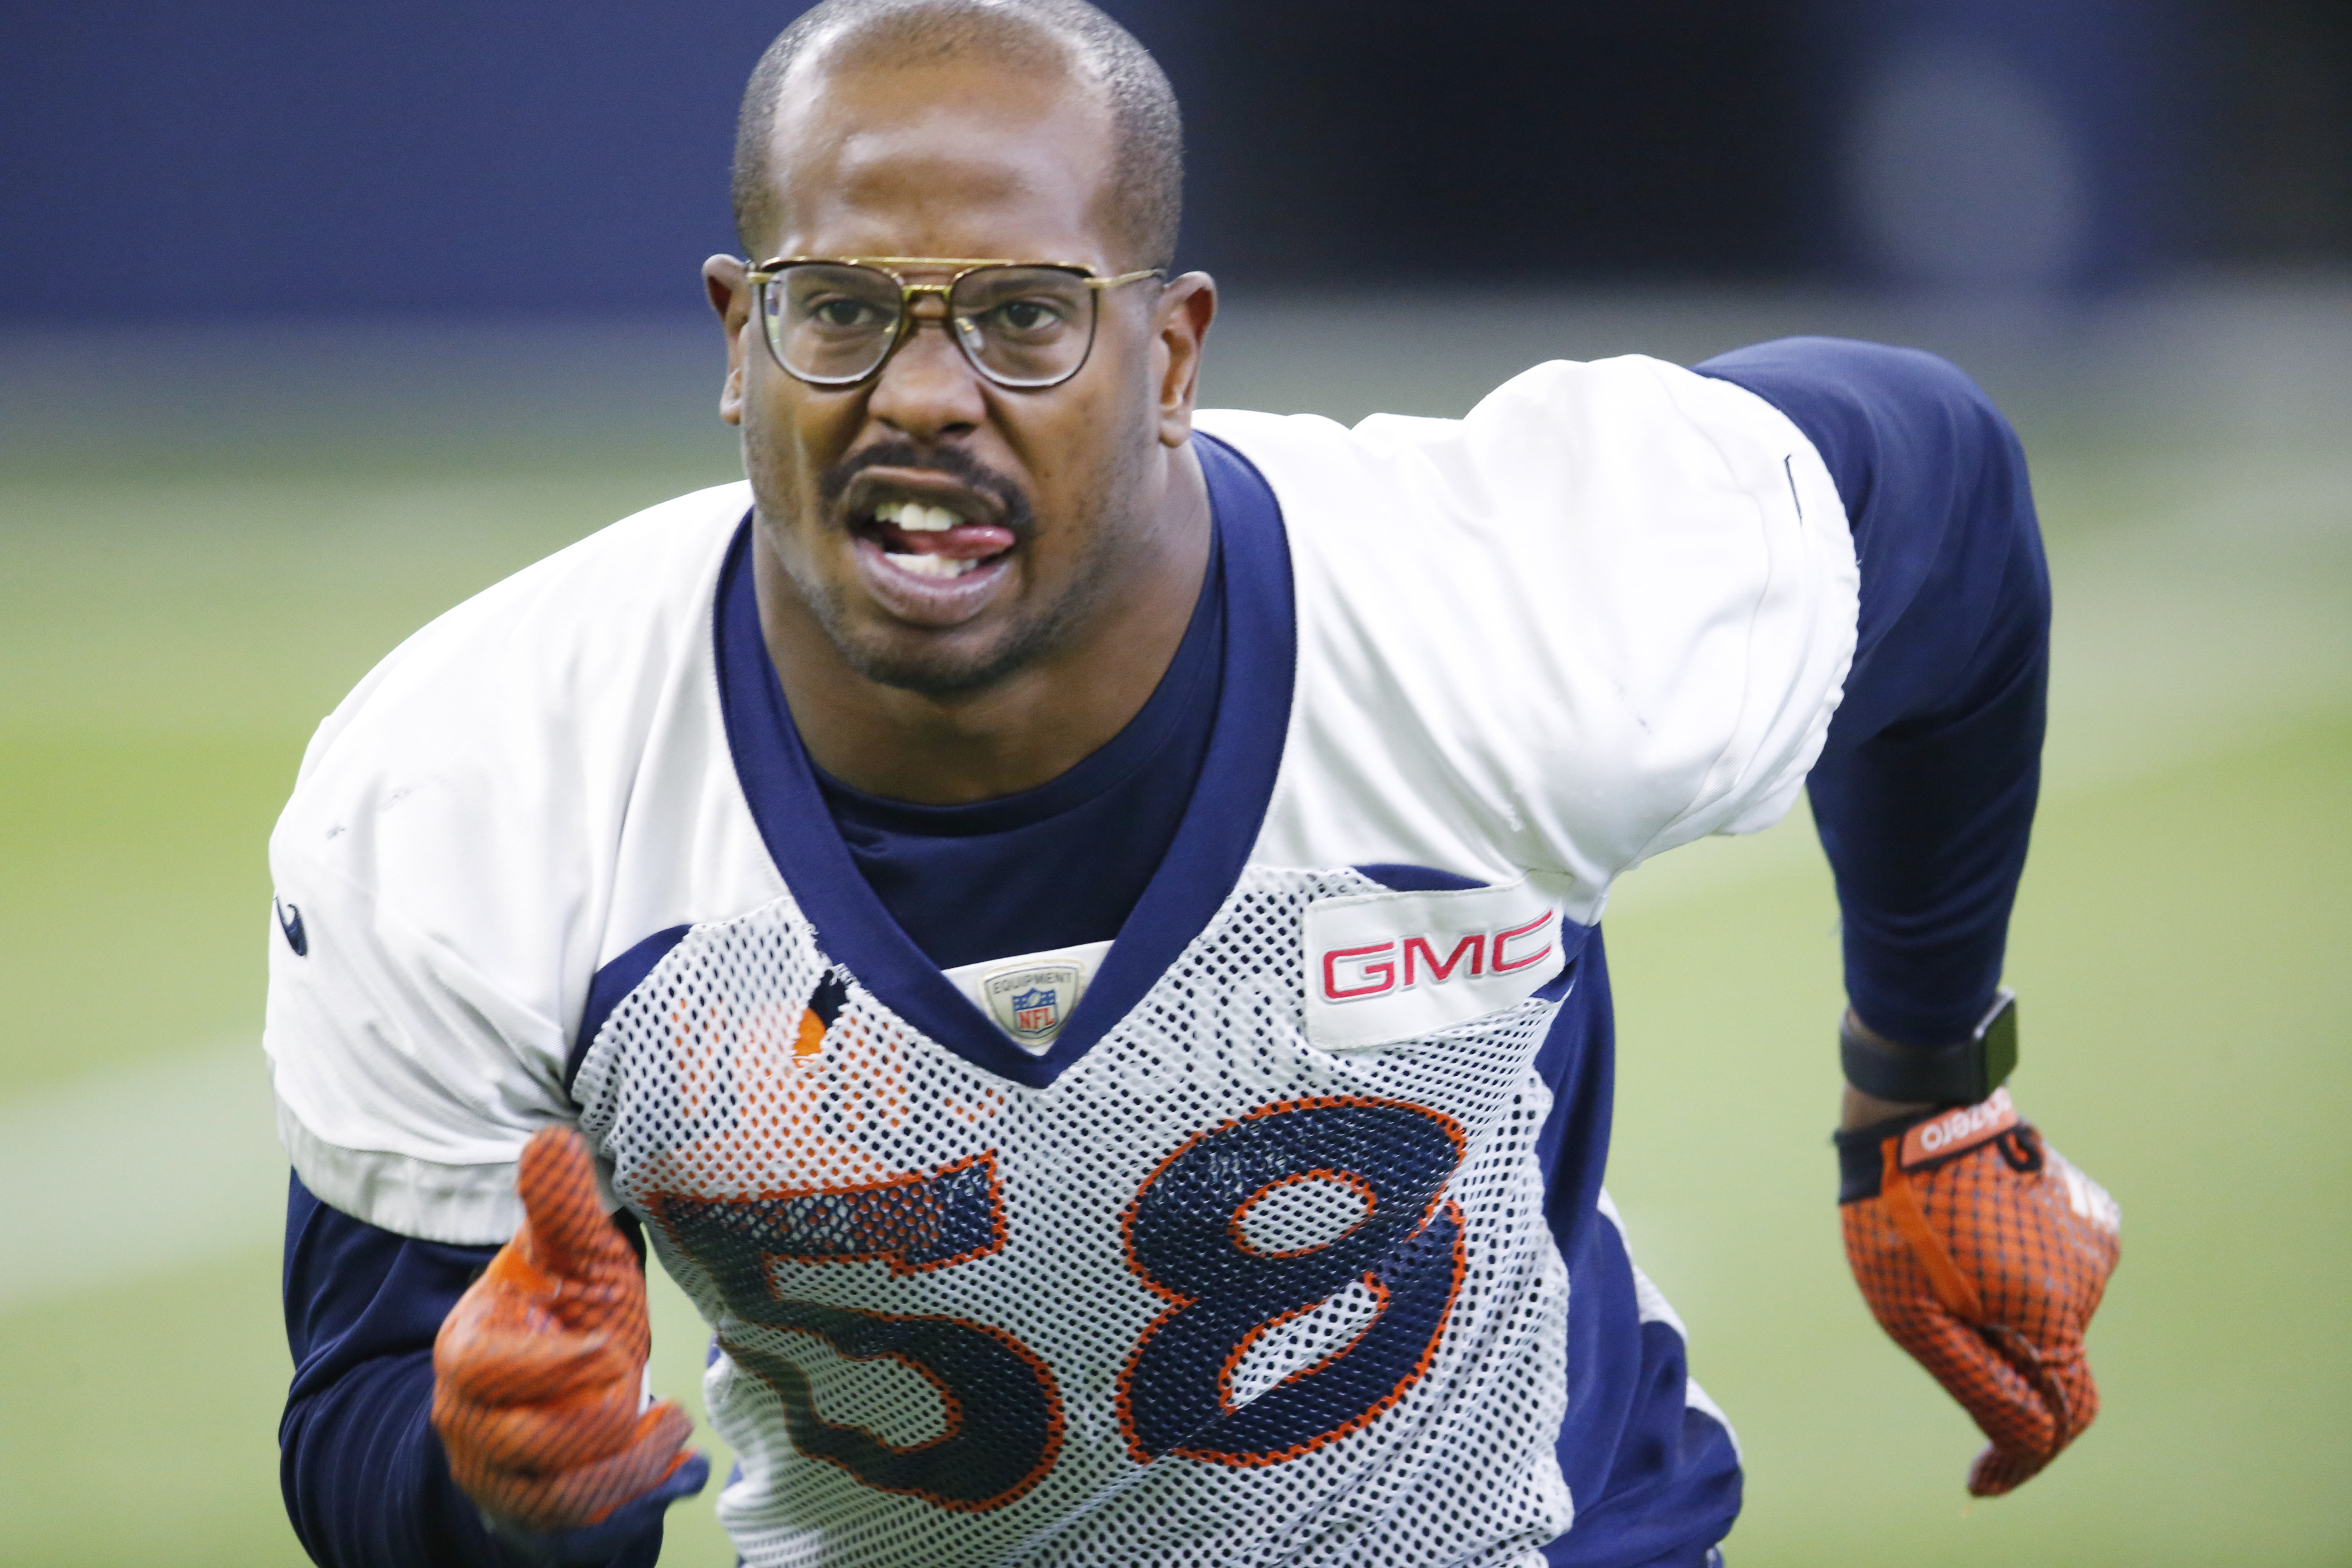 Denver Broncos outside linebacker Von Miller takes part in drill during the team's NFL football practice Thursday, Jan. 7, 2016, in Englewood, Colo. (AP Photo/David Zalubowski)